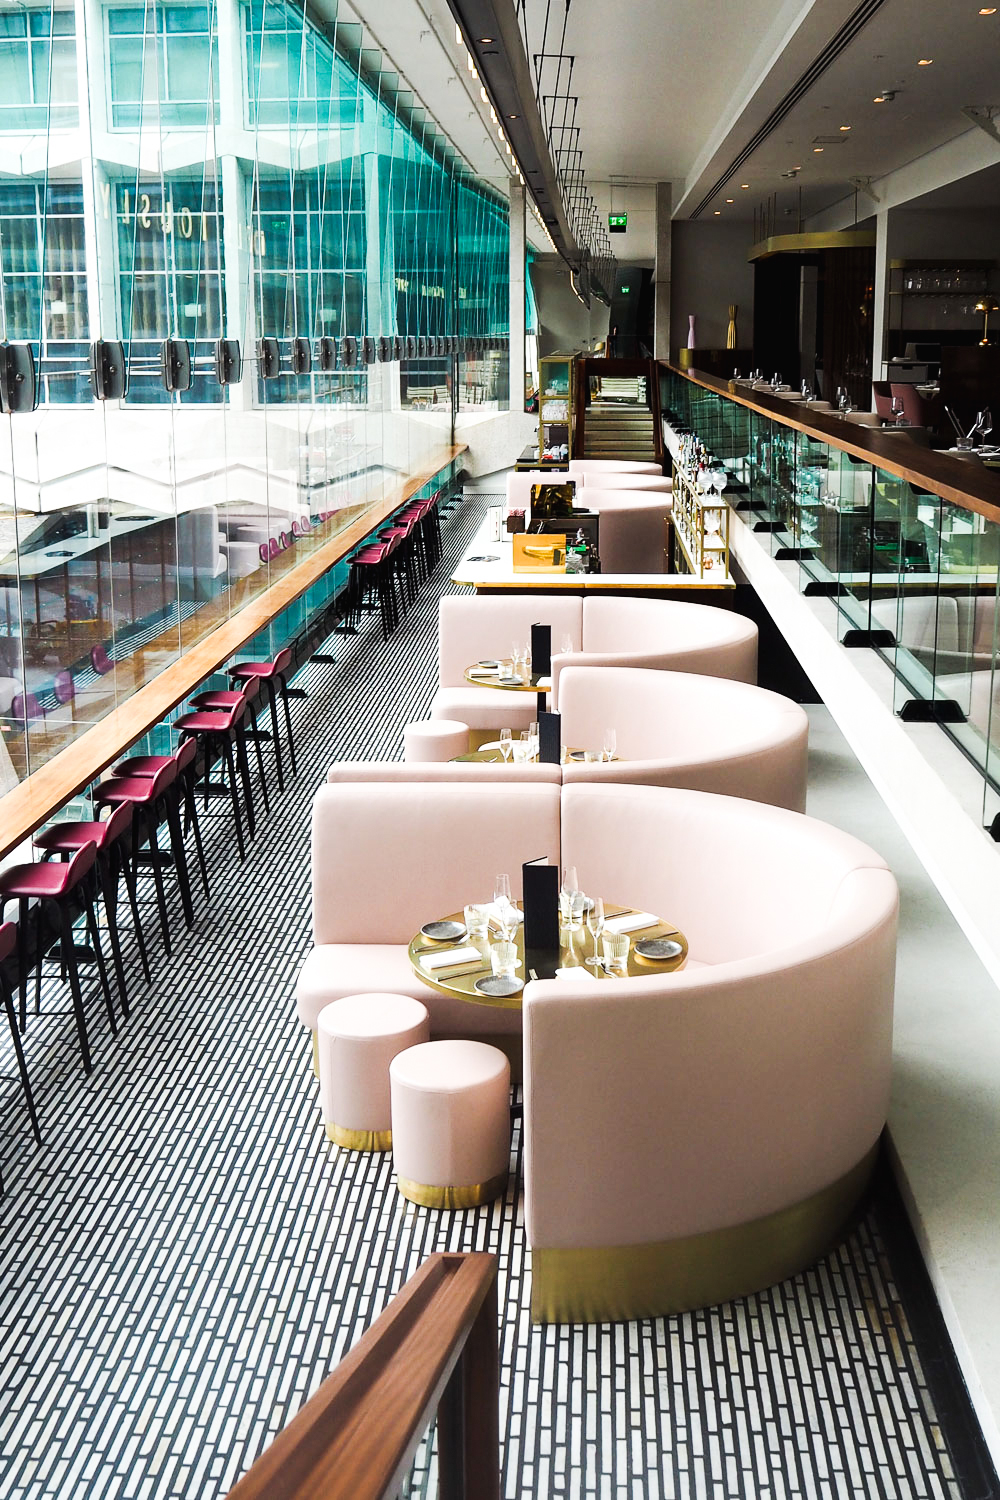 VIVI Restaurant & Bar at Centre Point in Tottenham Court Road, London